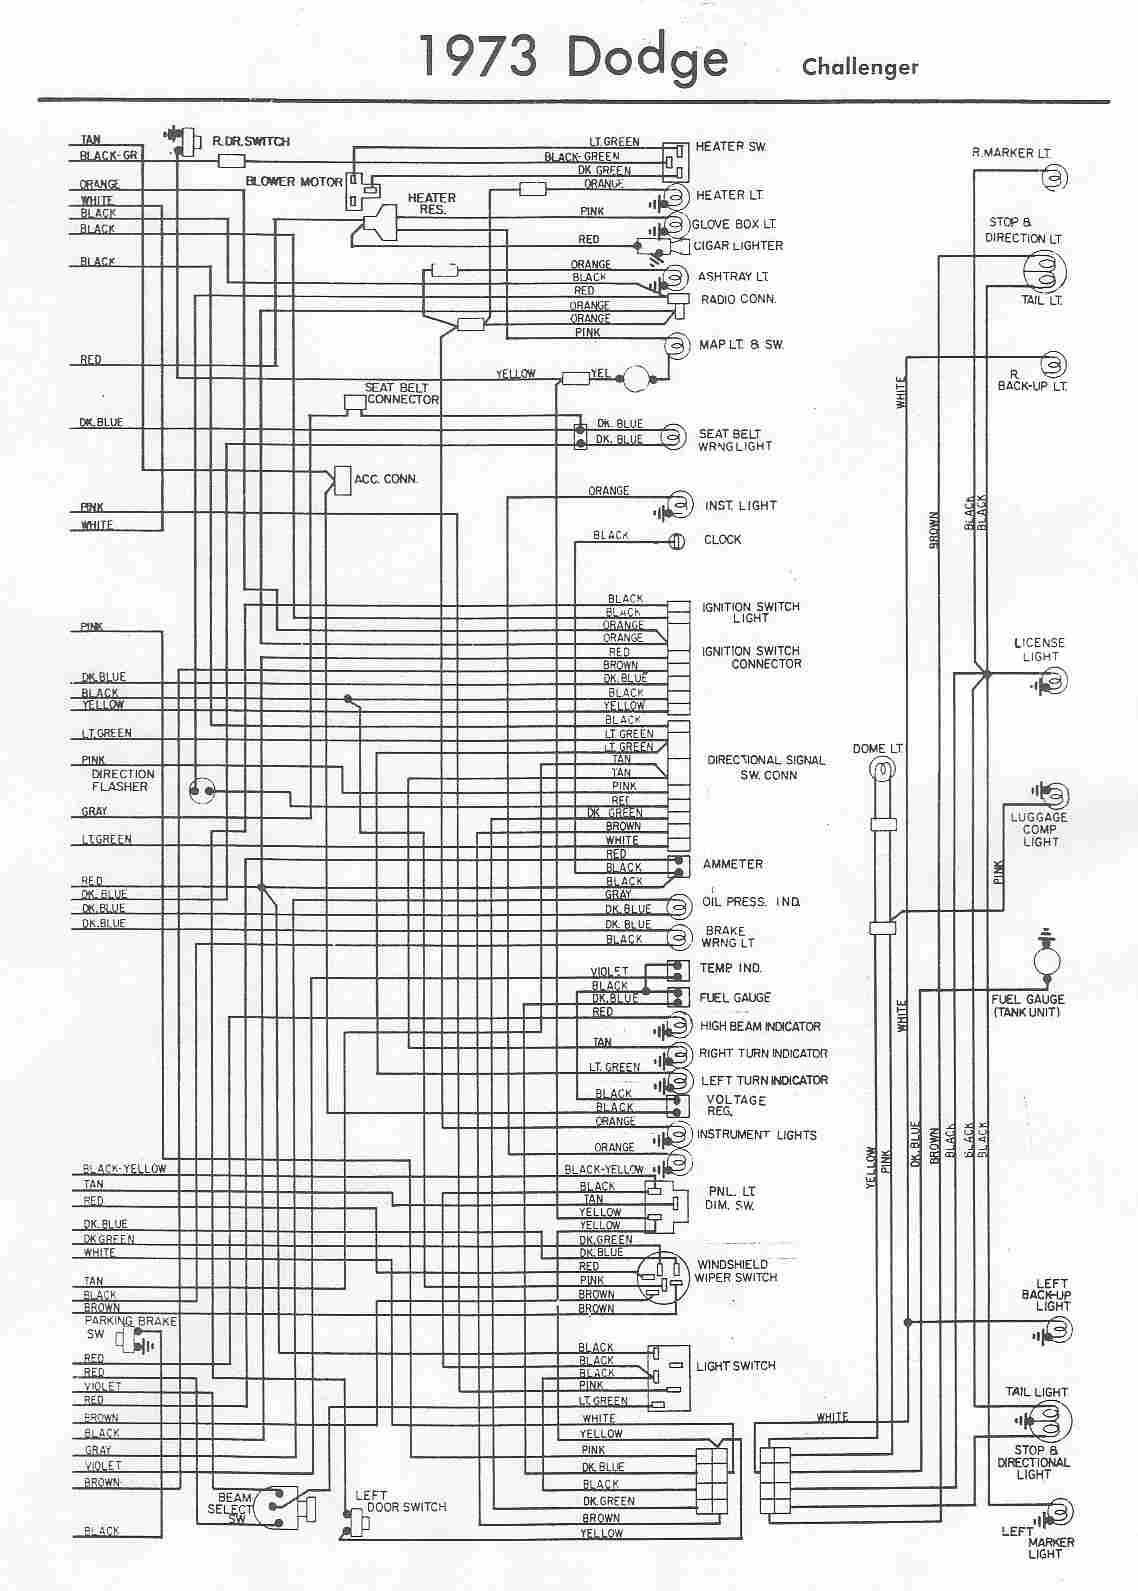 Electrical Wiring Schematics 1974 Charger - Wiring Diagram Database •